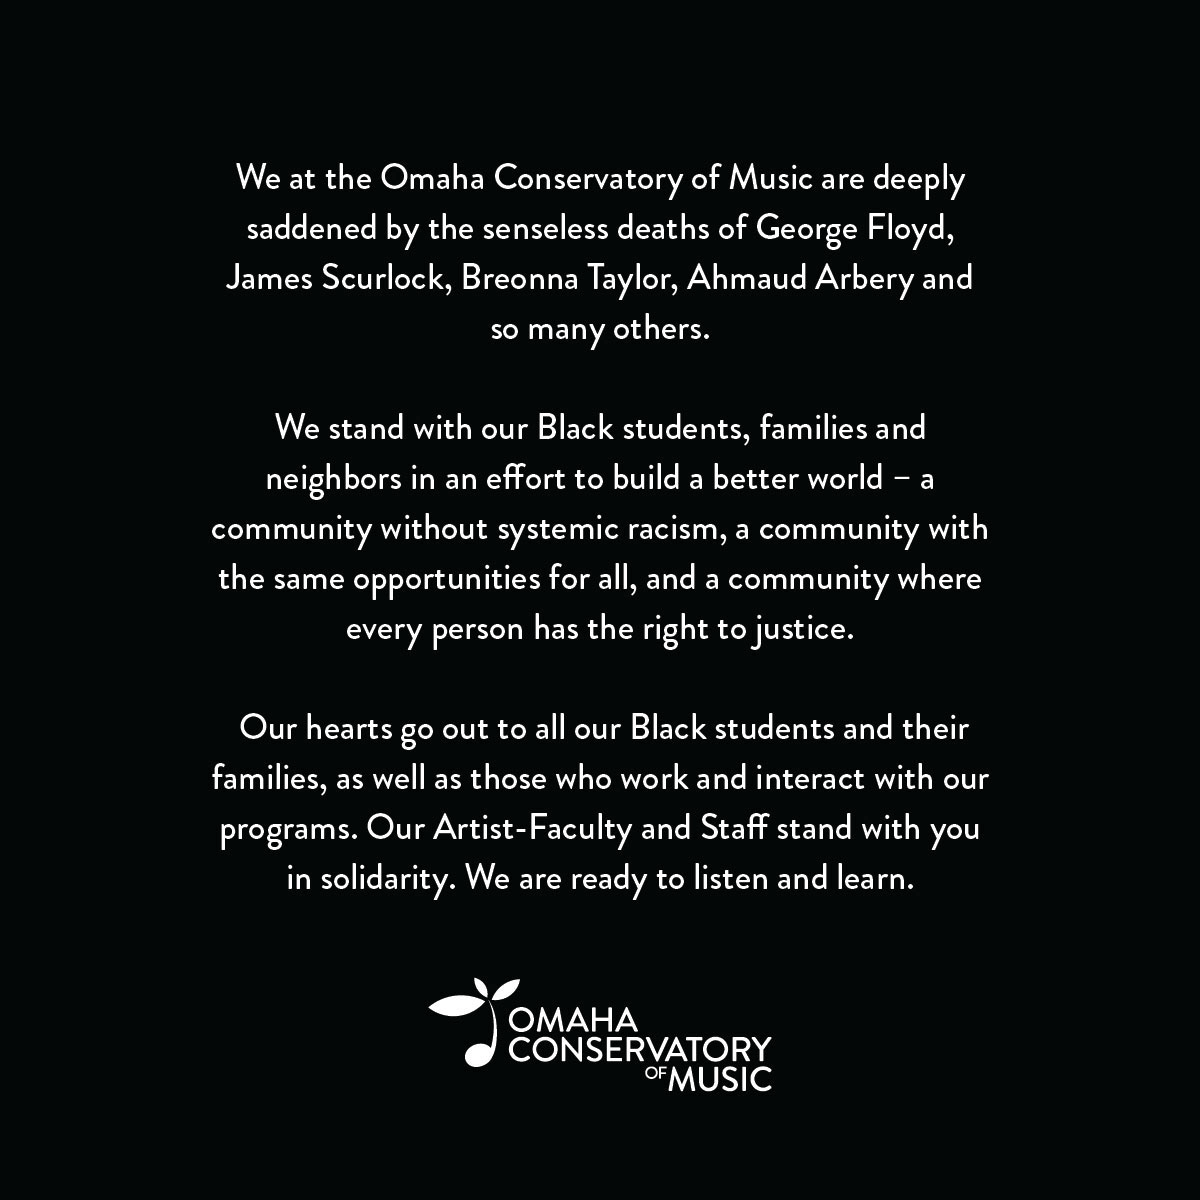 We at the Omaha Conservatory of Music are deeply saddened by the senseless deaths of George Floyd, James Scurlock, Breonna Taylor, Ahmaud Arbery and so many others.  We stand with our Black students, families and neighbors in an effort to build a better world - a community without systemic racism, a community with the same opportunities for all, and a community where every person has the right to justice.  Our hearts go out to all our Black students and their families, as well as those who work and interact with our programs. Our Artist-Faculty and Staff stand with you in solidarity. We are ready to listen and learn.  Omaha Conservatory of Music